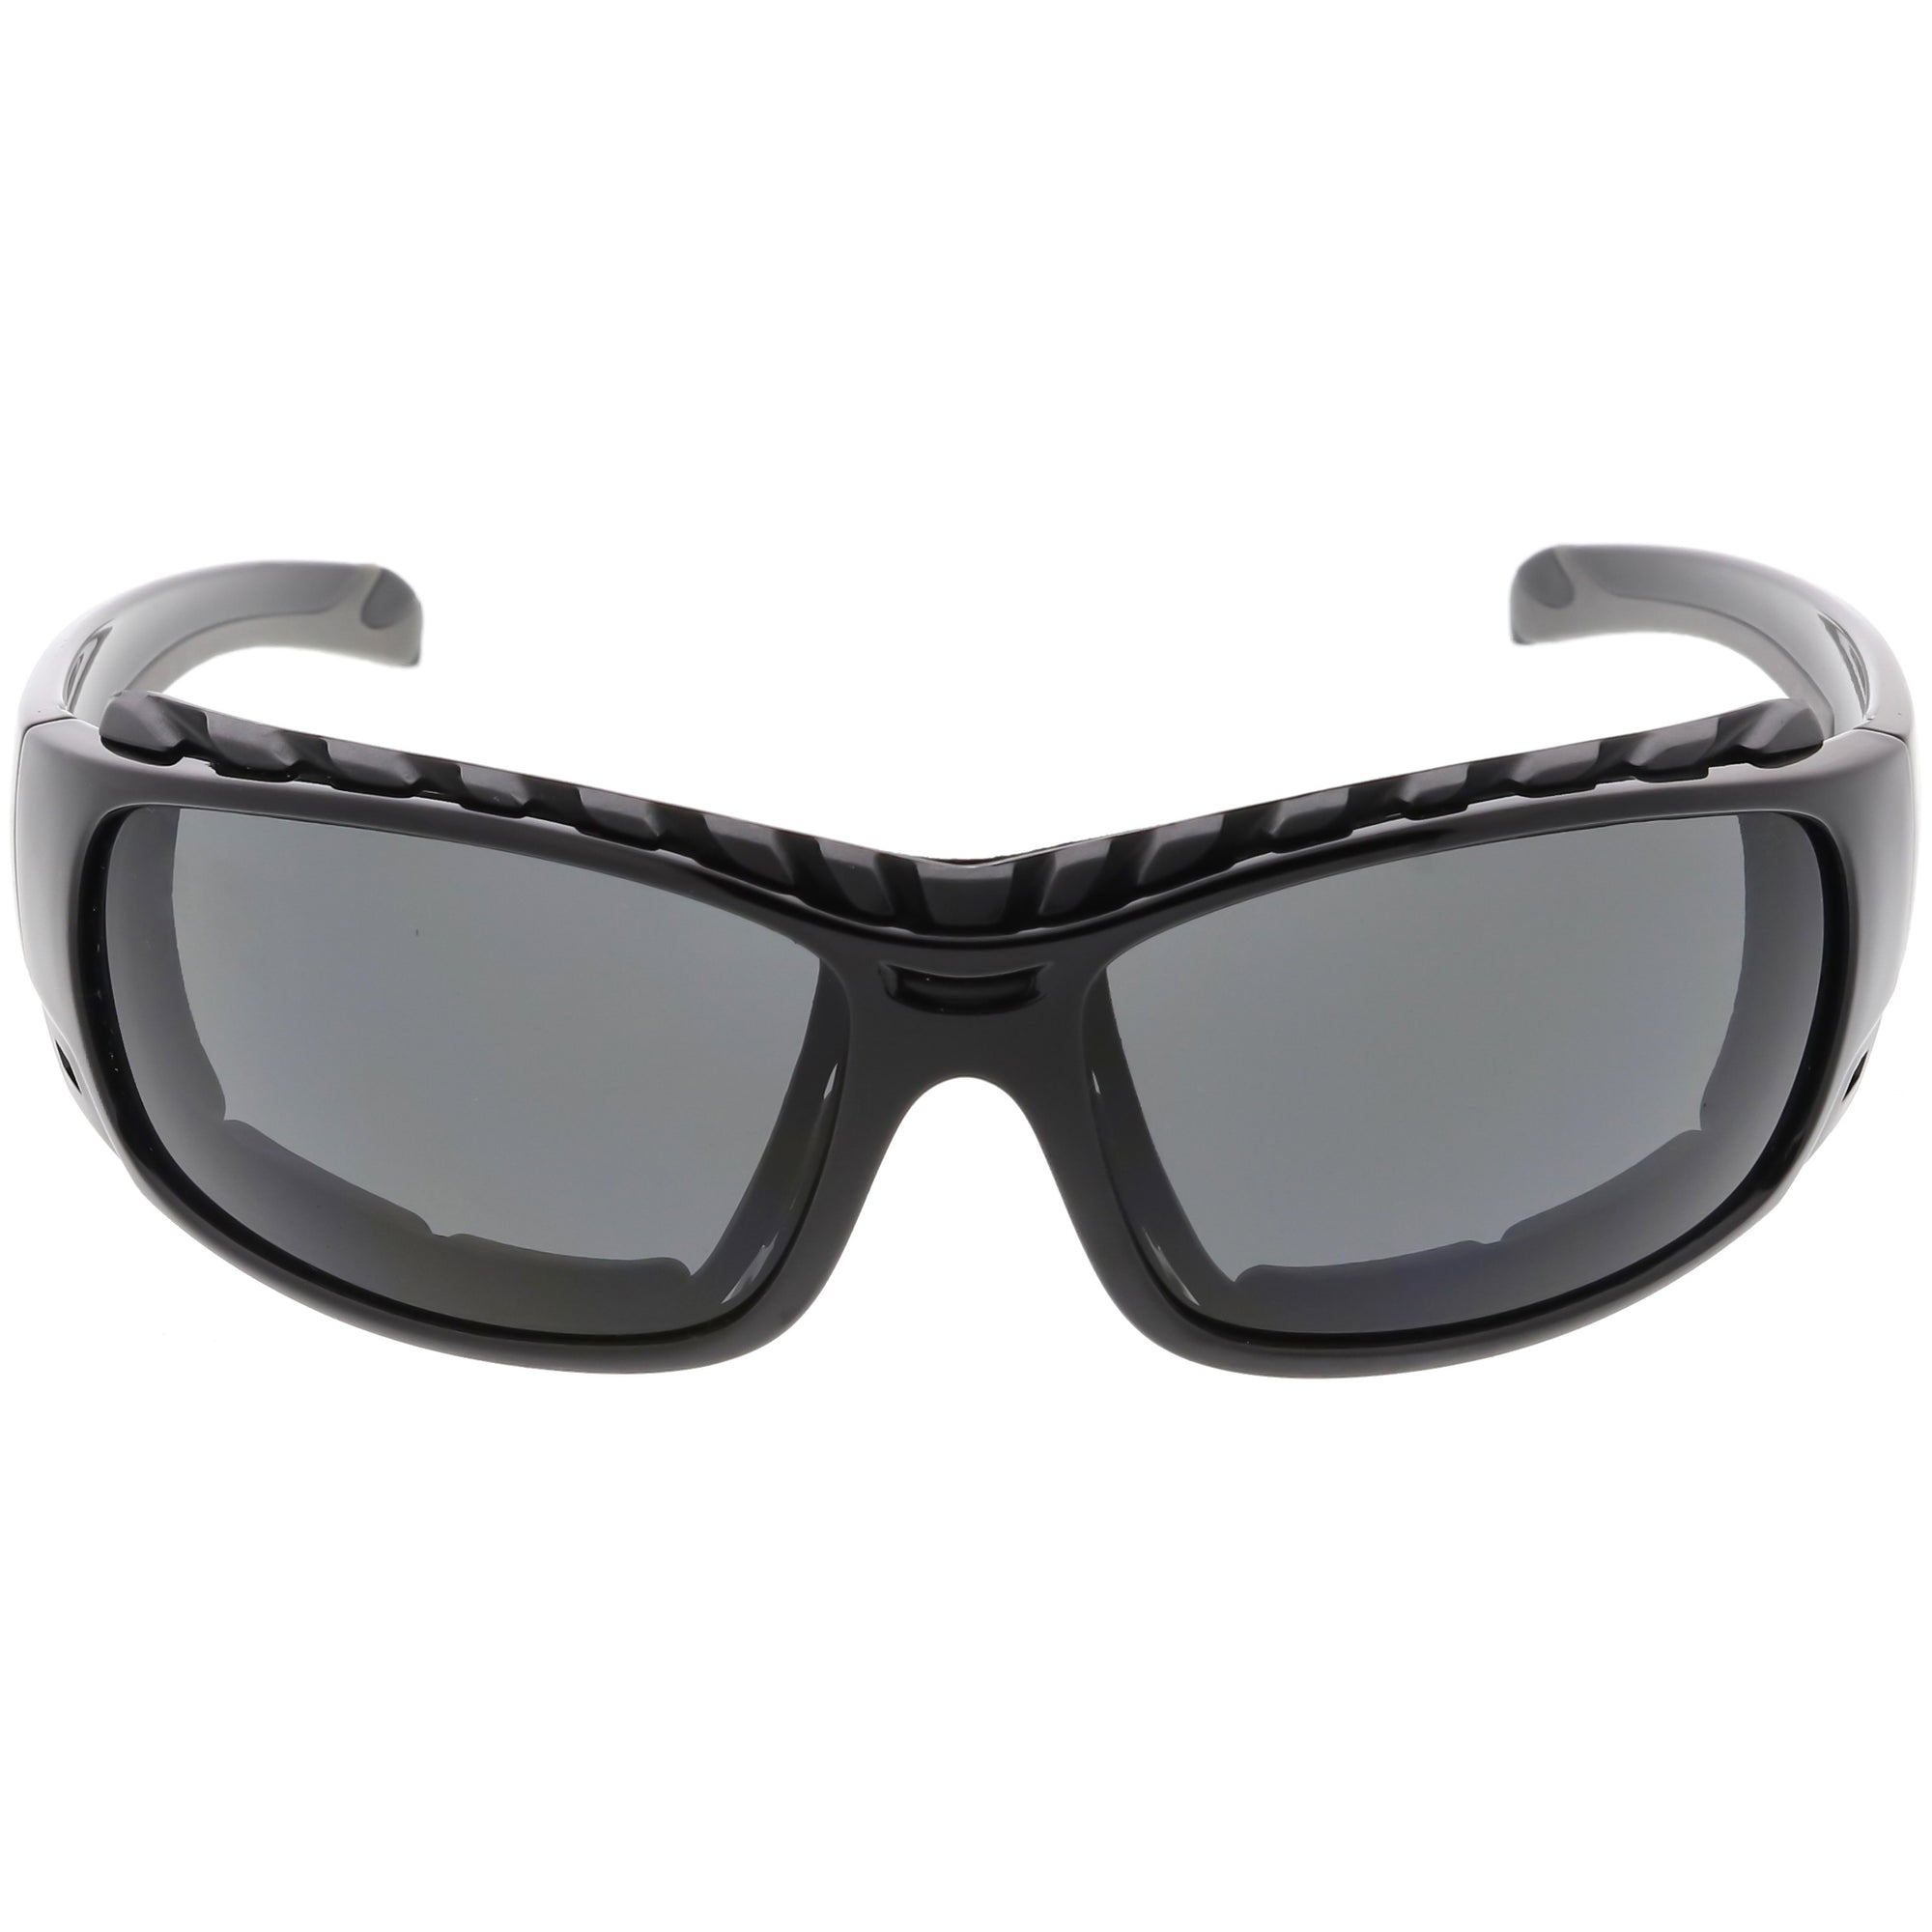 0e6c6d5209 Premium Protective TR-90 Foam Padded Safety Goggles C805